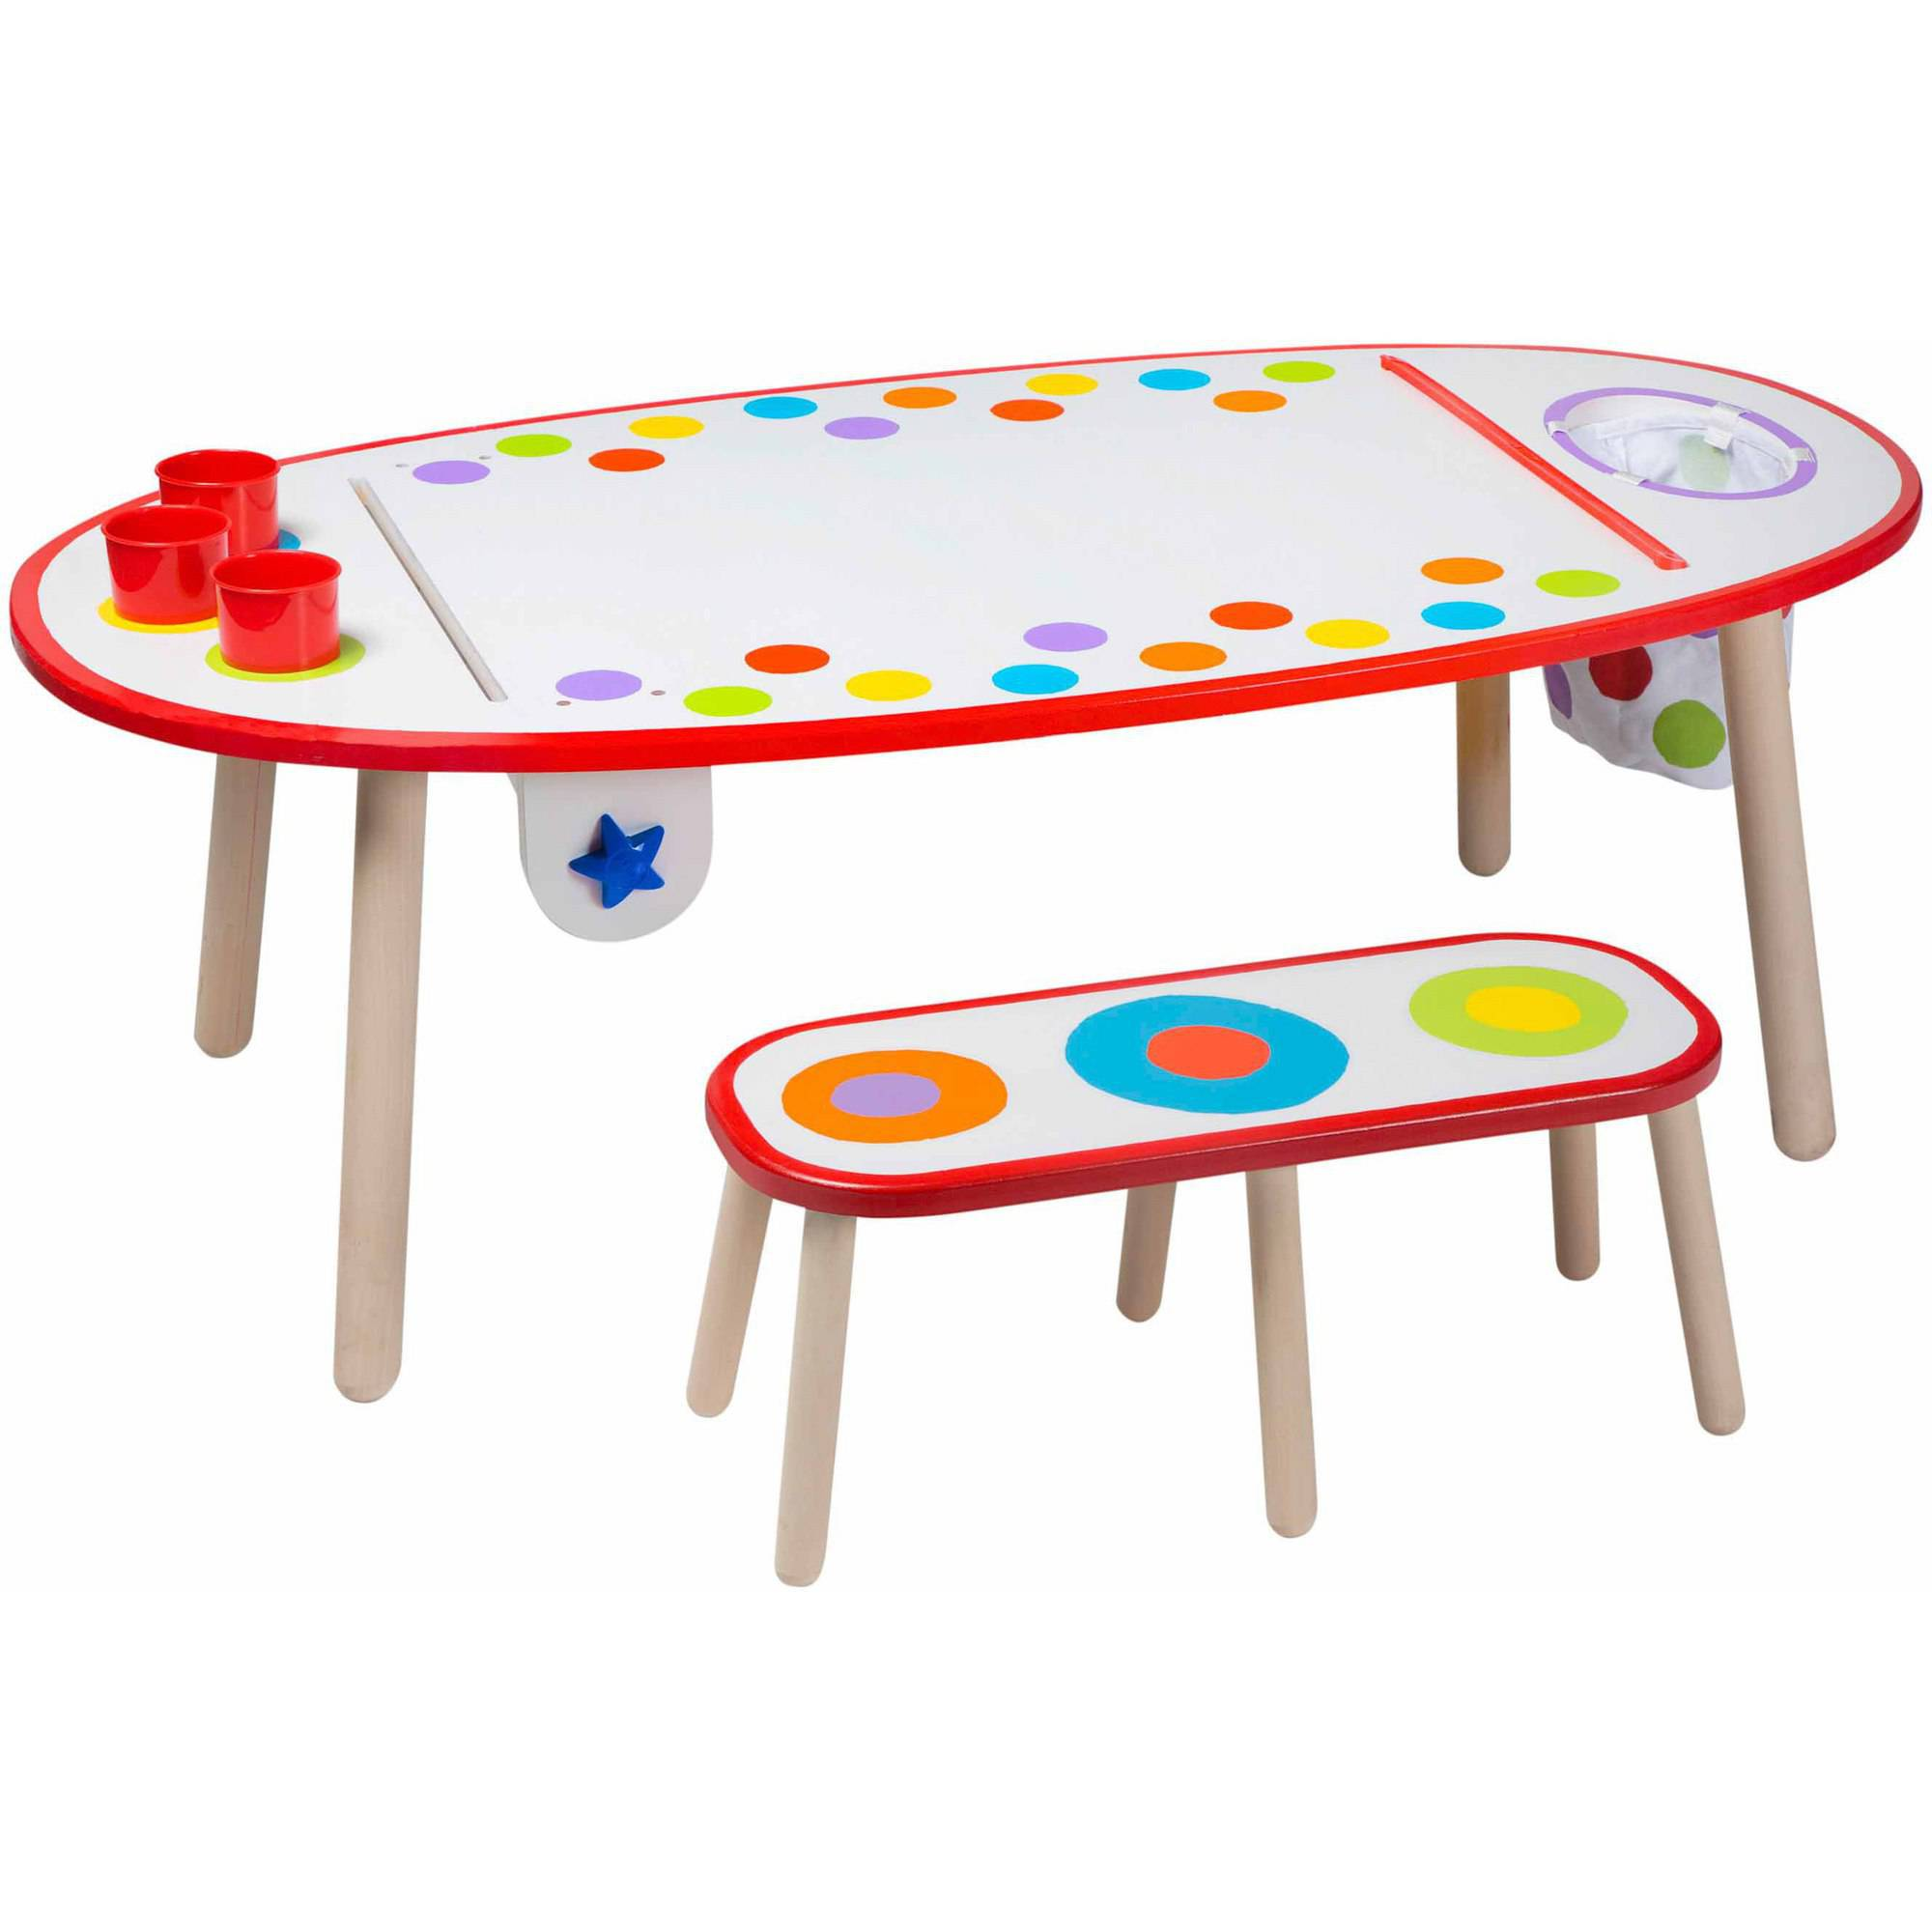 ALEX Toys Artist Studio Super Art Table, Rainbow Dots